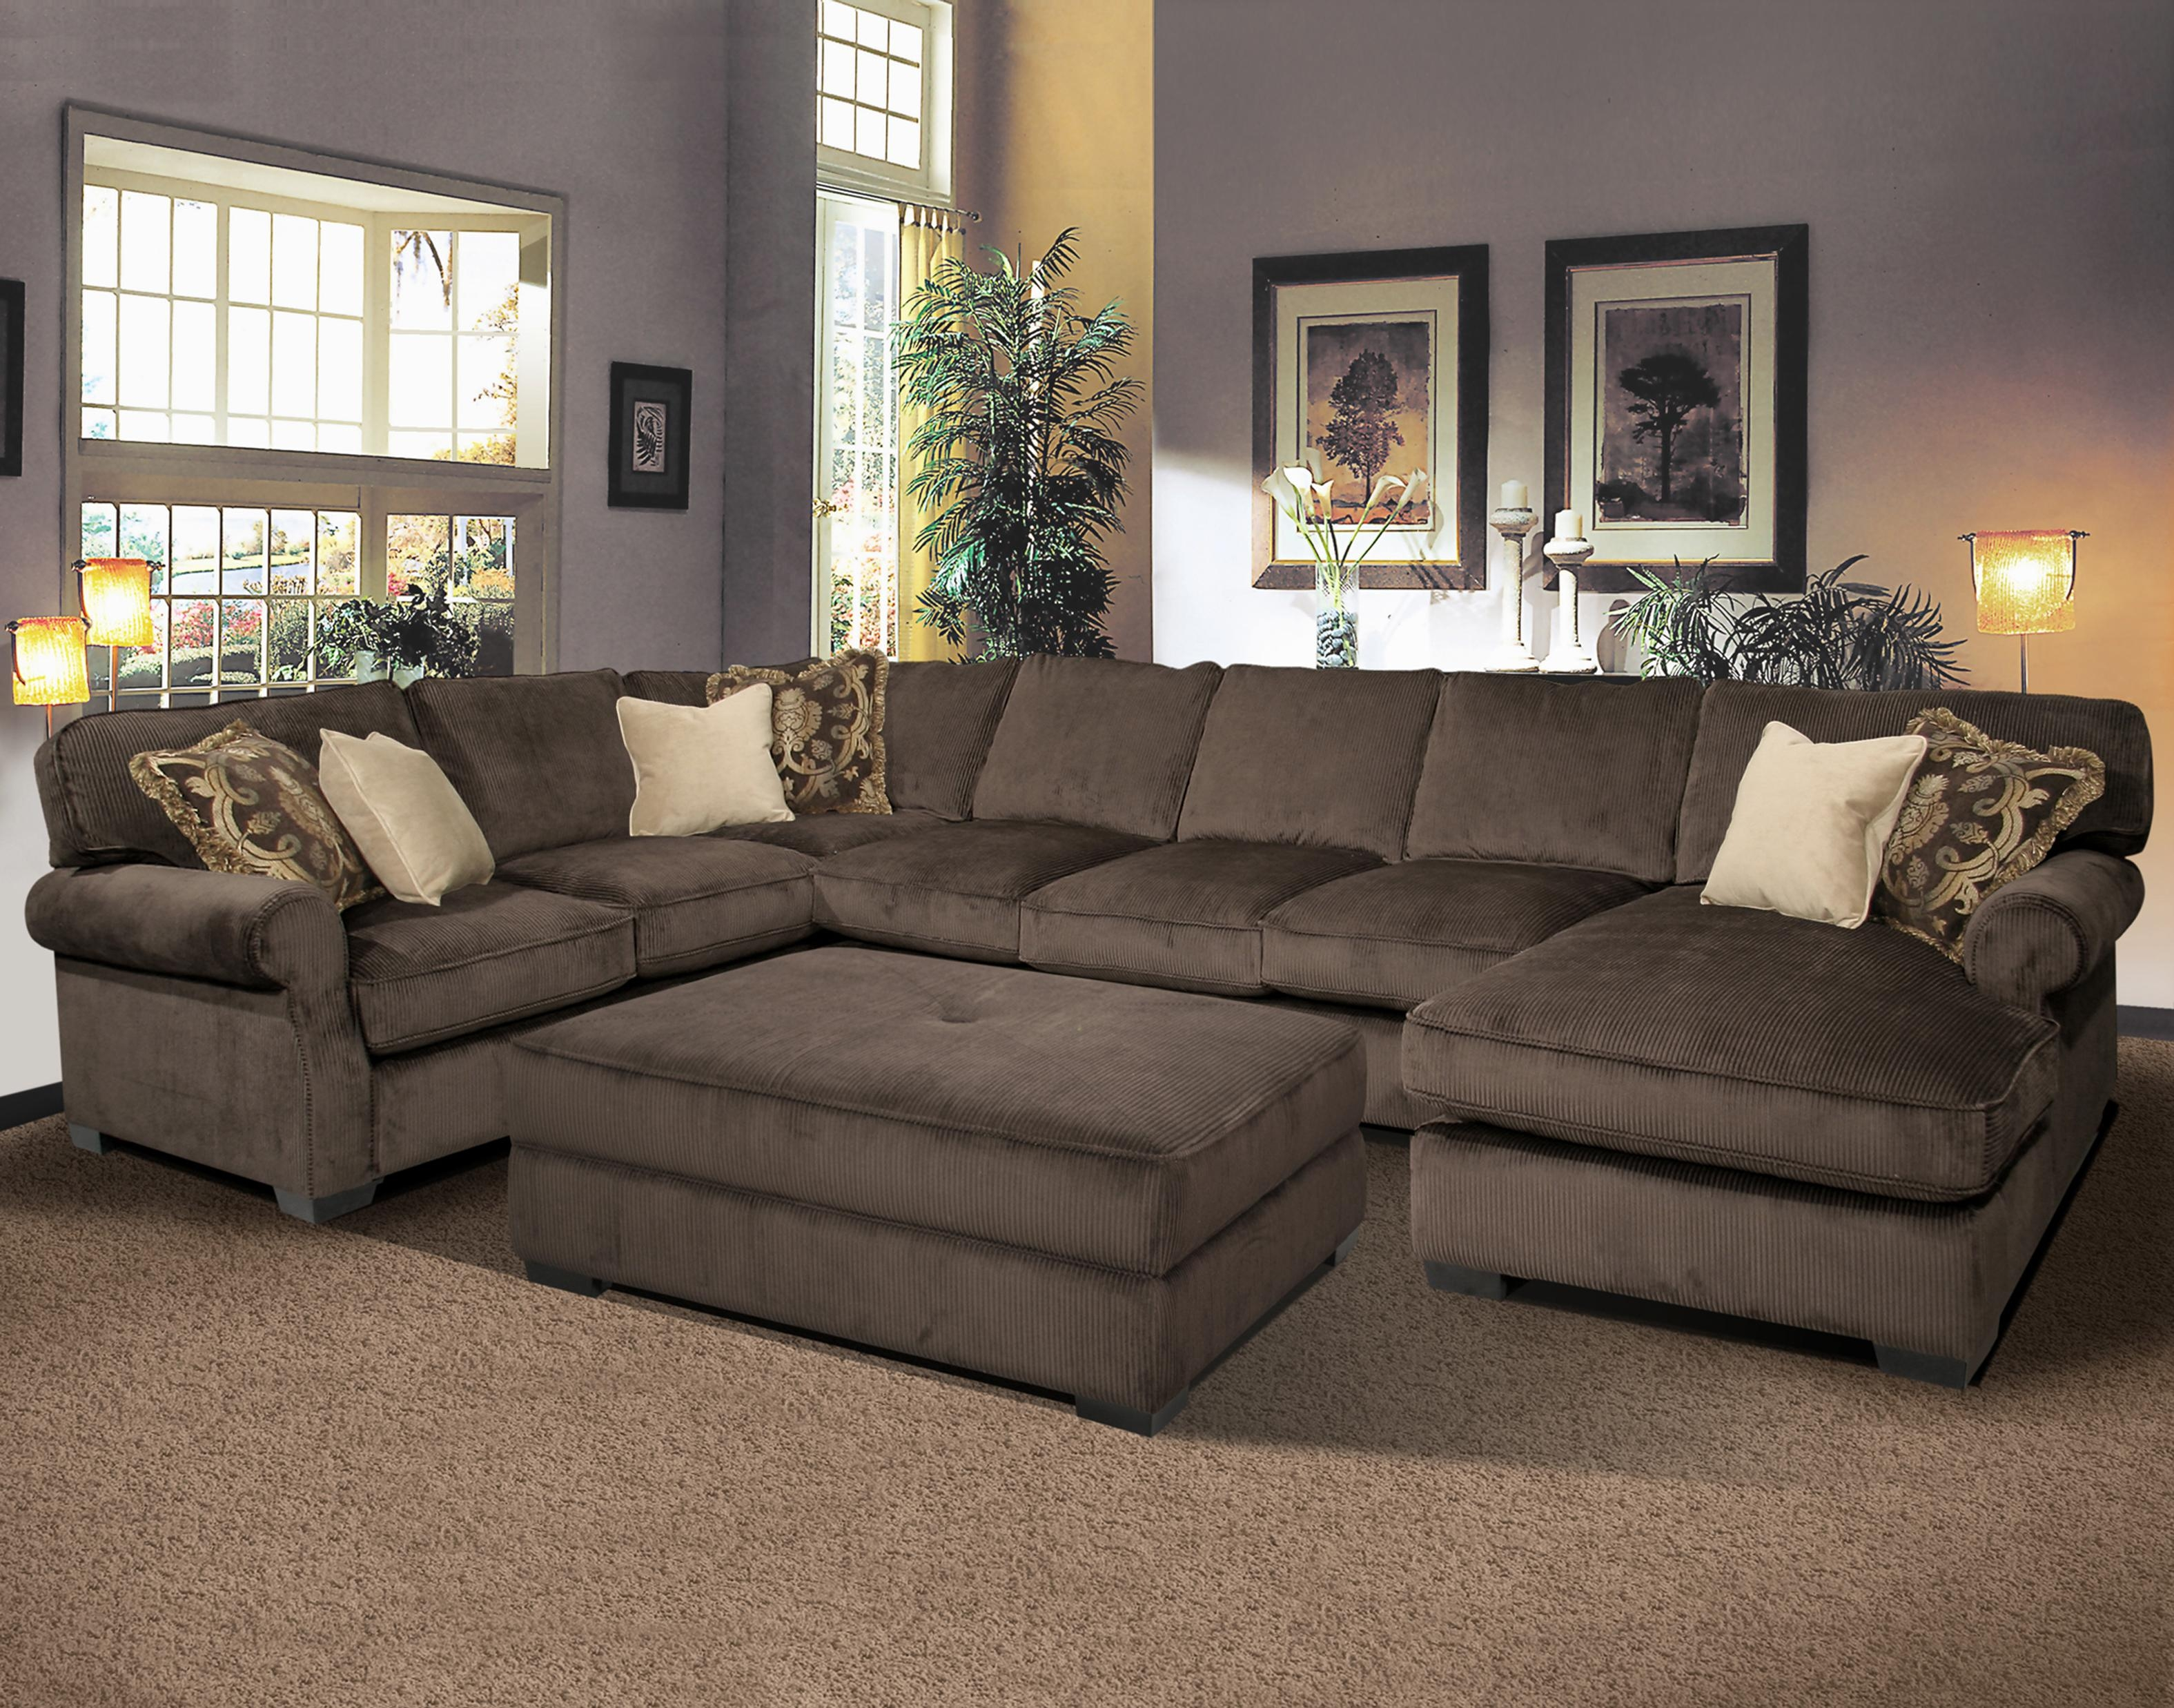 Featured Image of 7 Seat Sectional Sofa